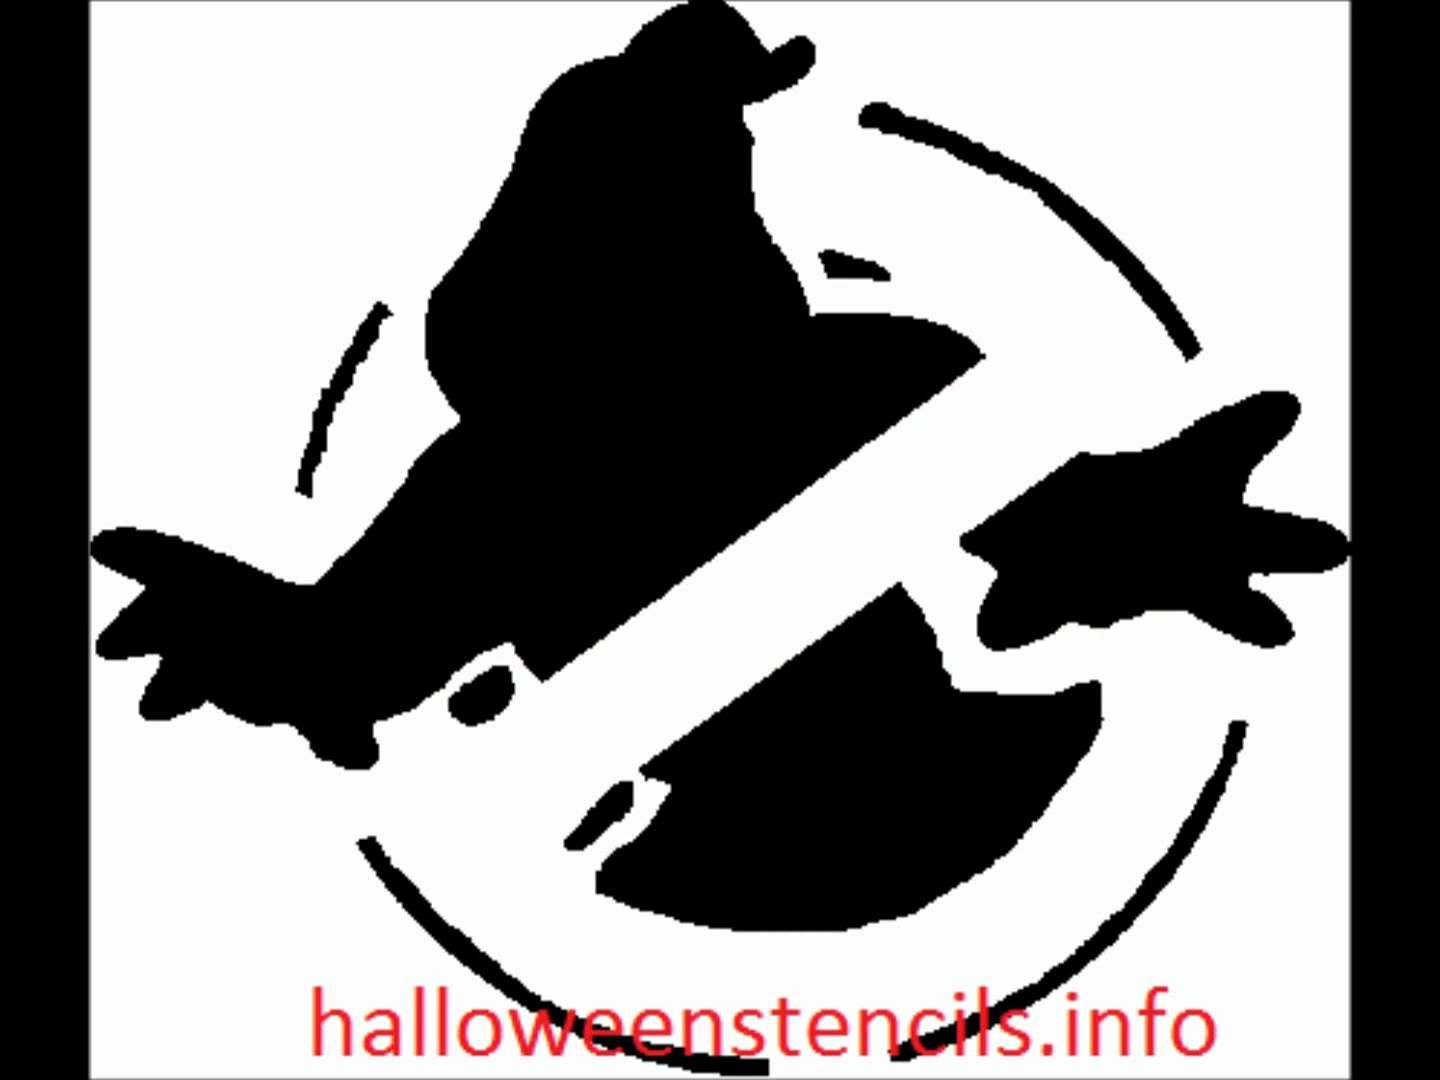 Halloween pumpkin carving stencil template download